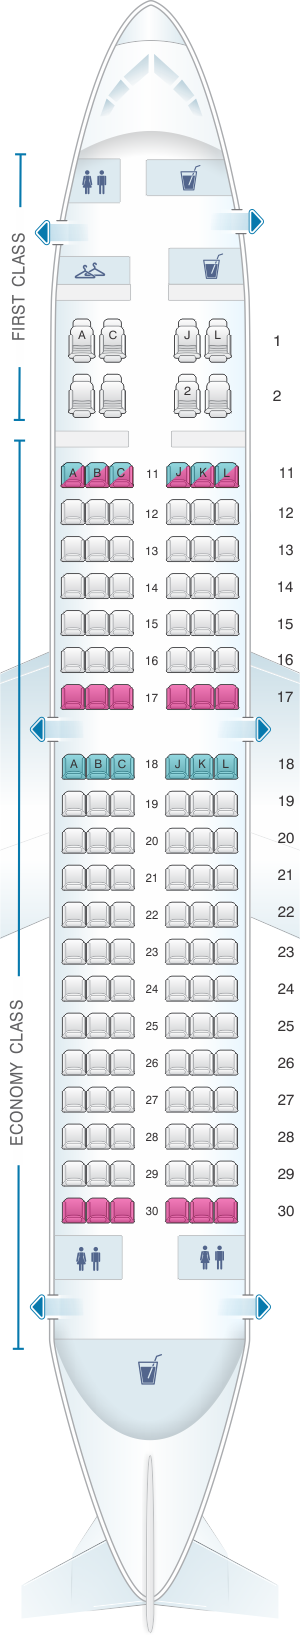 Seat map for Air China Boeing B737 700